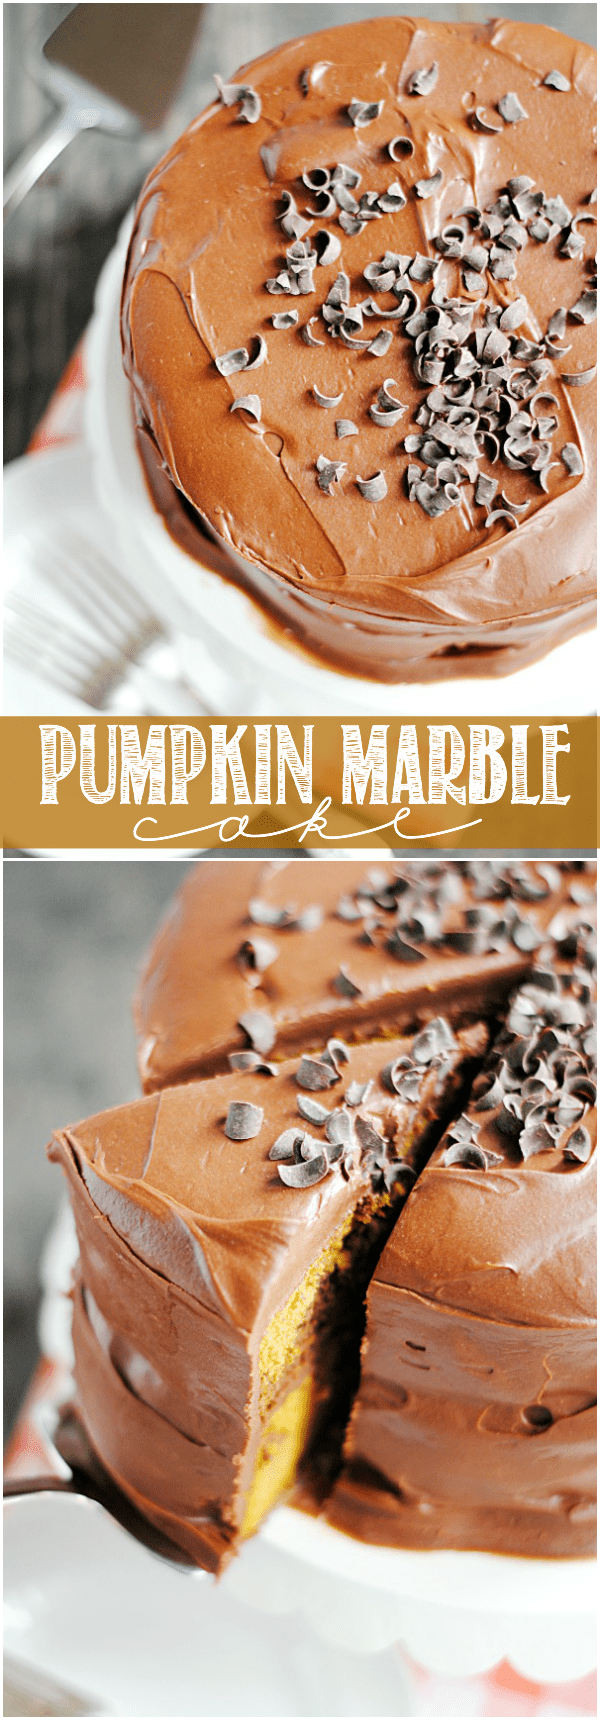 Pumpkin Marble Cake deliciously combines a dense, moist pumpkin cake with a rich decadent chocolate cake topped with the best chocolate frosting you've ever tasted!